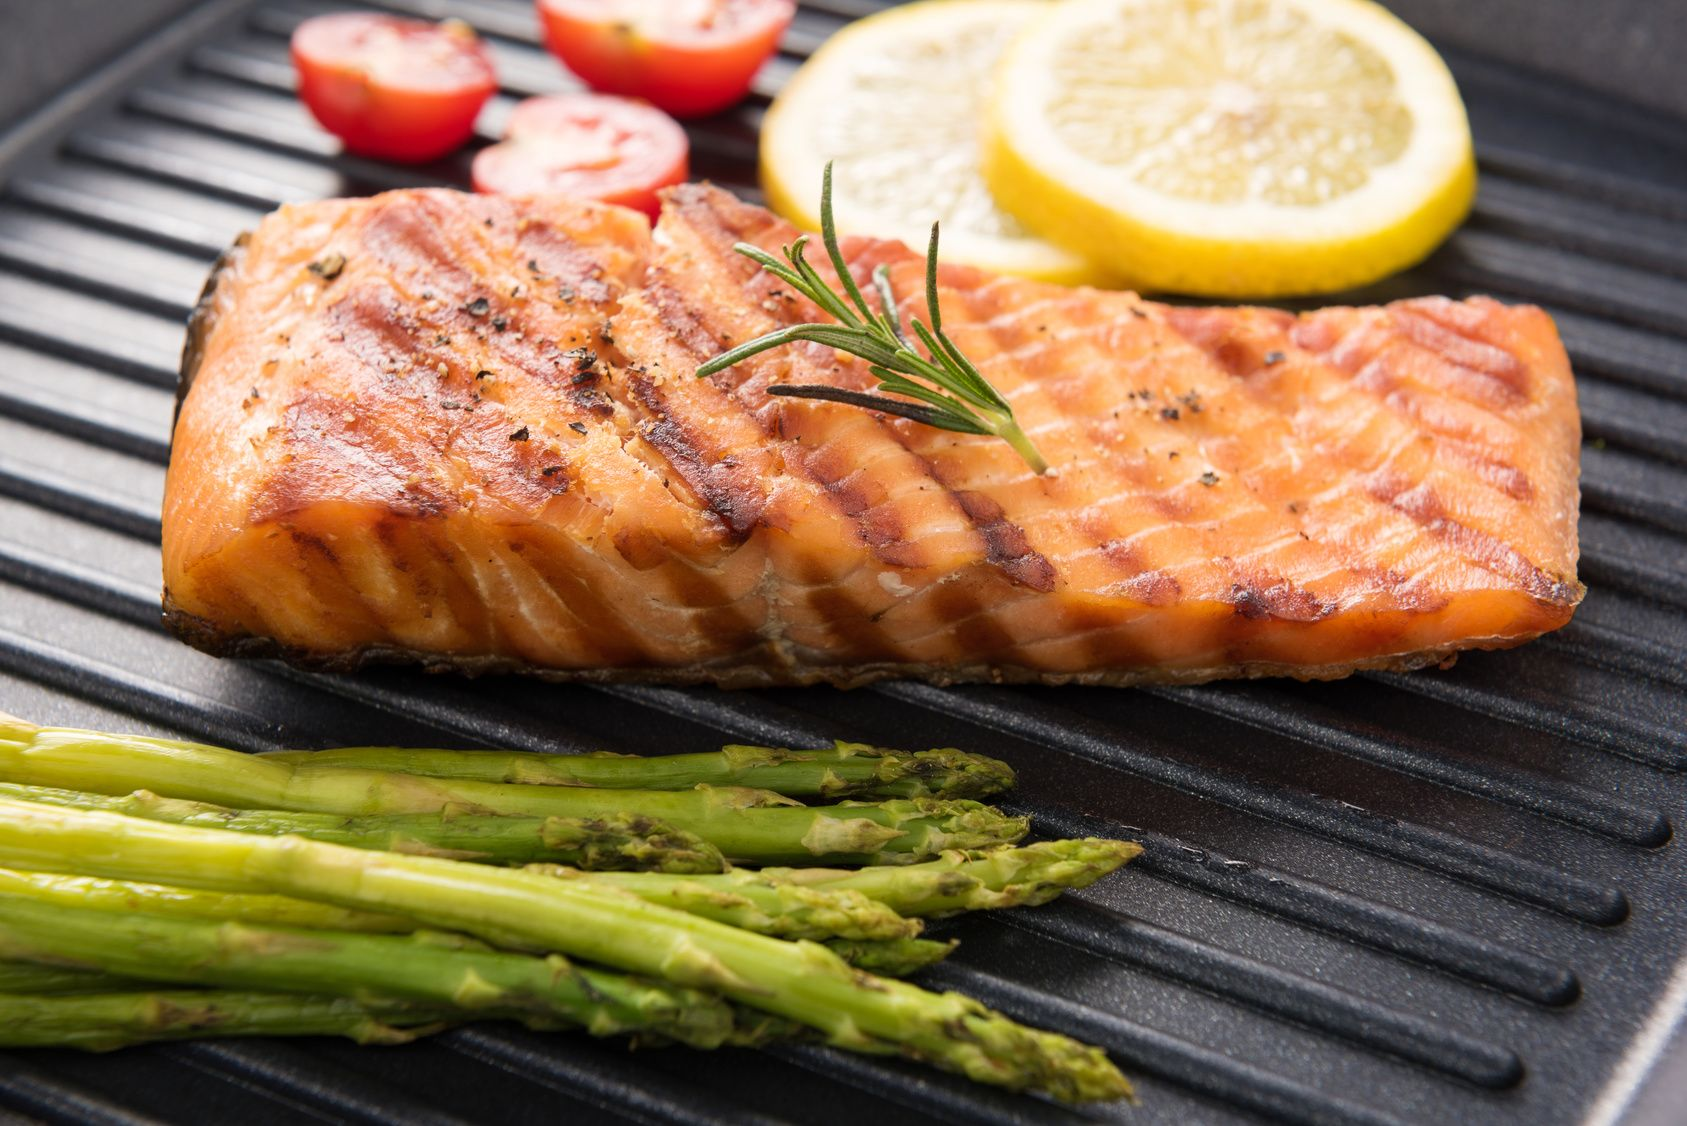 Grilled salmon cooked BBQ on a pan.